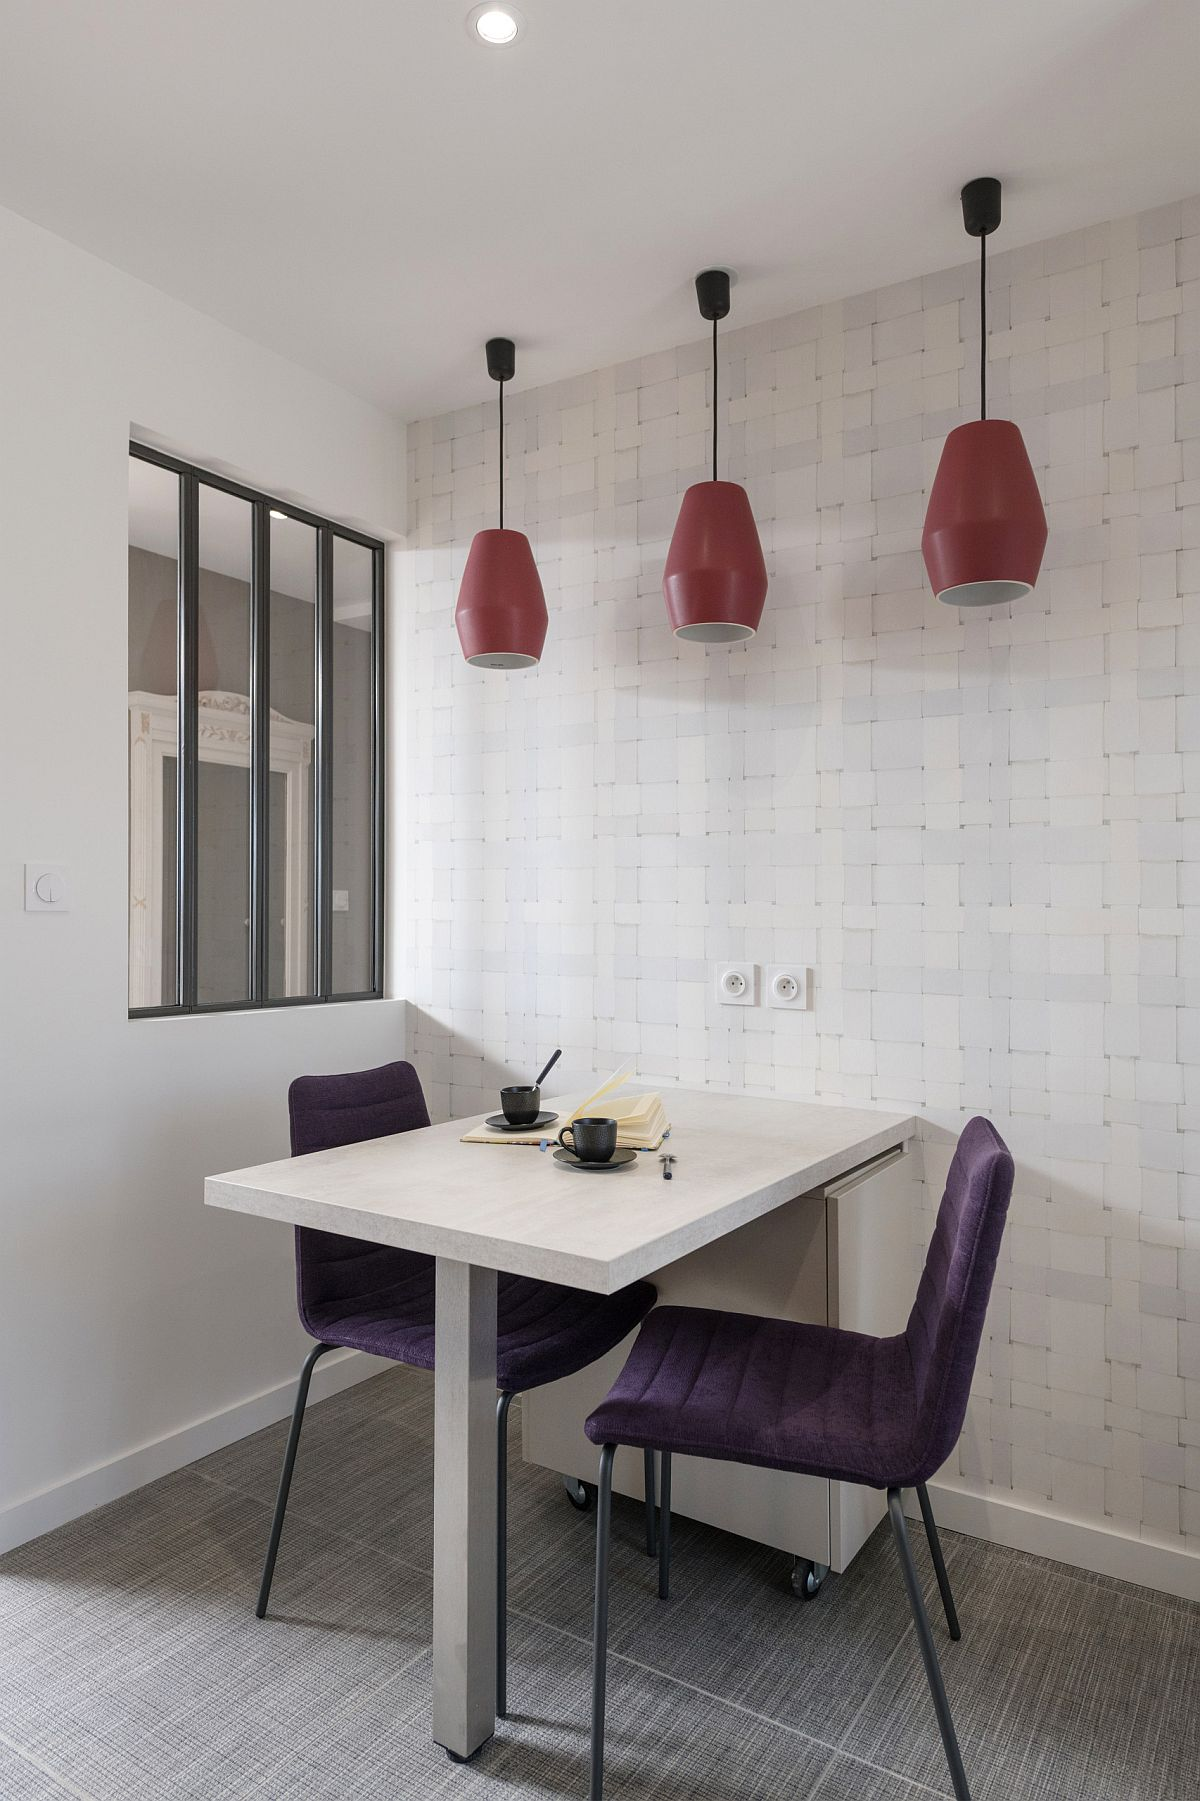 Red-pendants-add-color-and-contrastto-the-minimal-dining-room-in-white-10597